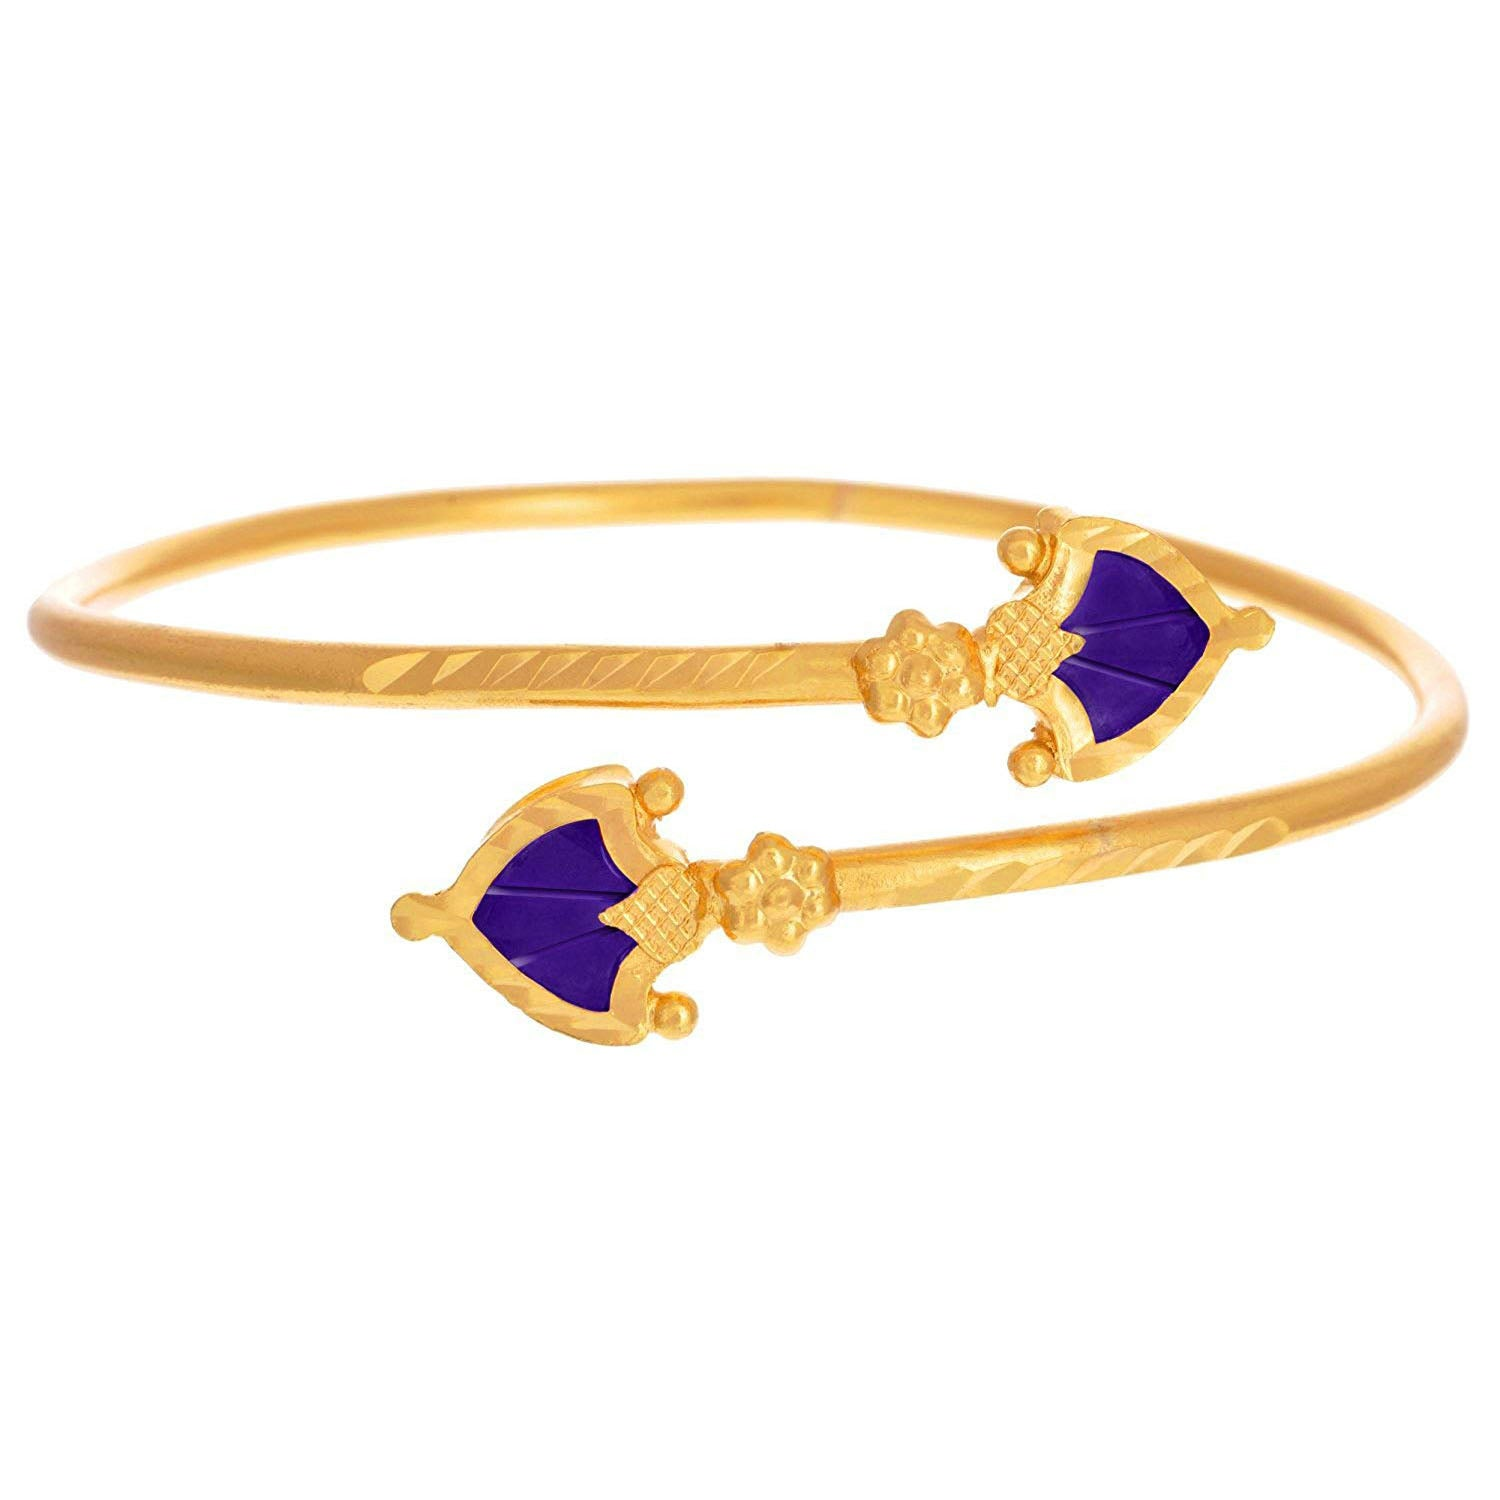 JFL - Jewellery for Less Traditional One Gm Gold Plated Blue Meenakari Designer Kada (Adjustable) for Women